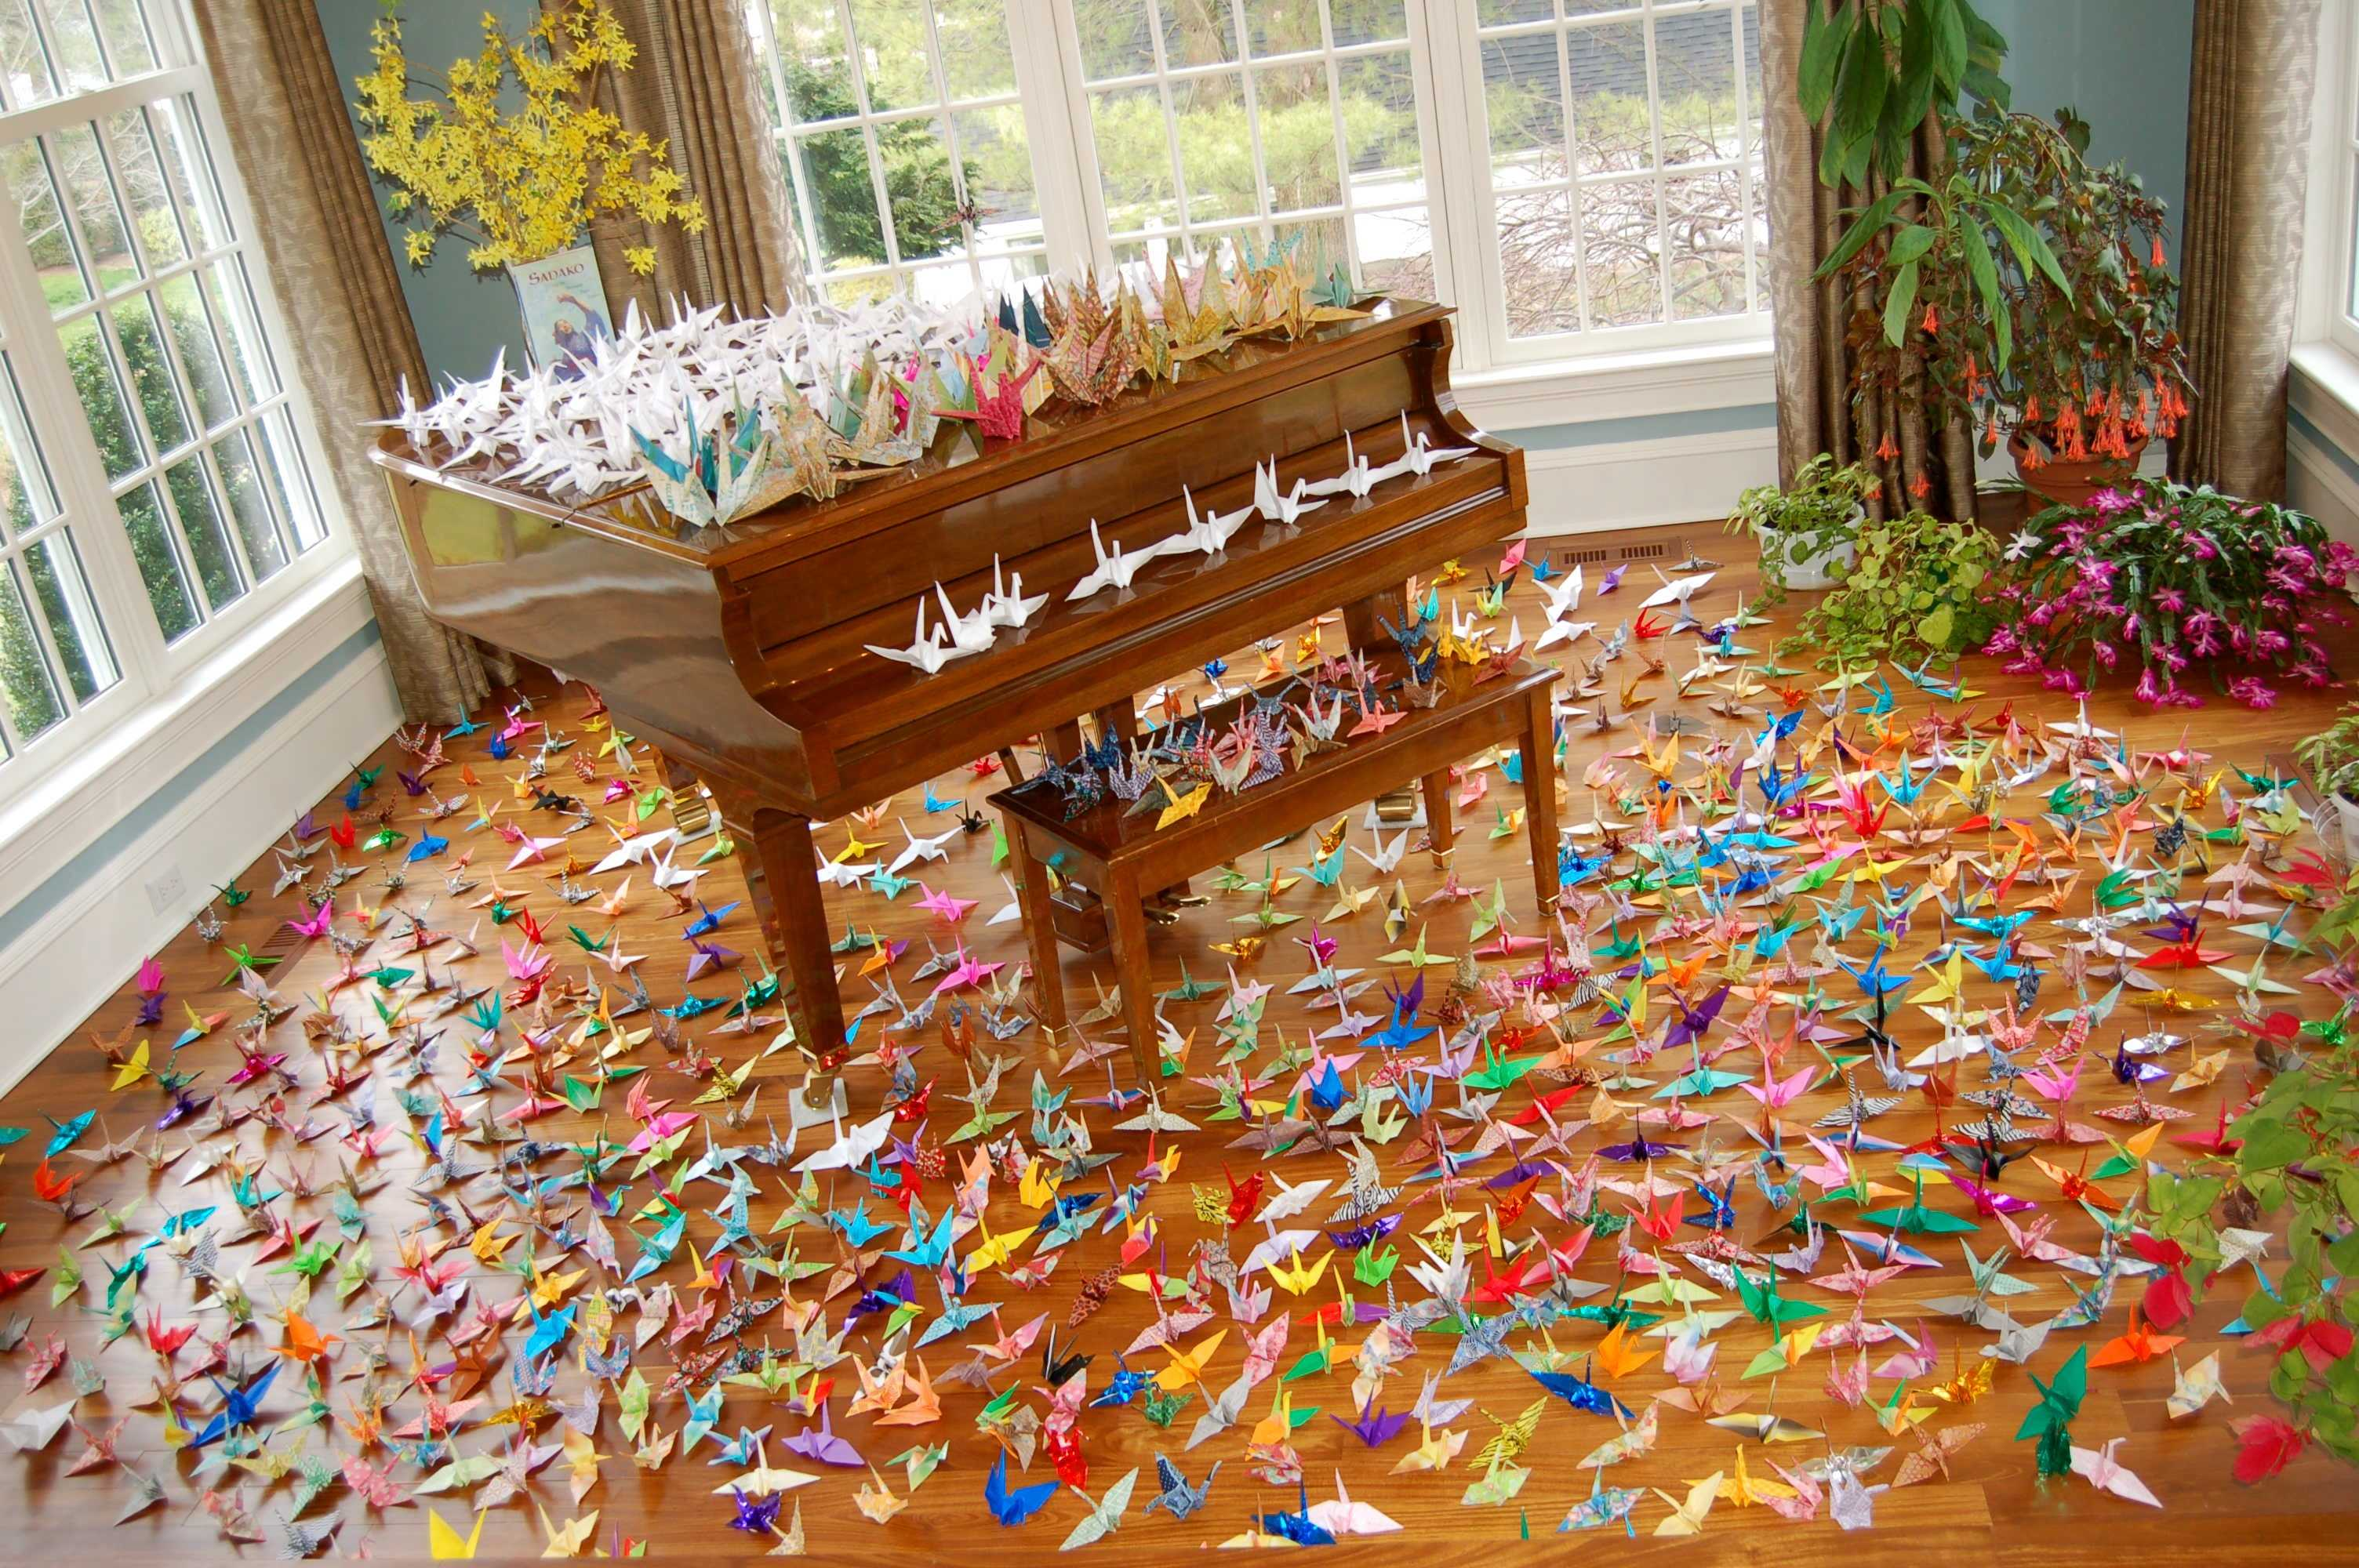 1 000 Paper Cranes For Japanese Relief Efforts Inklings News